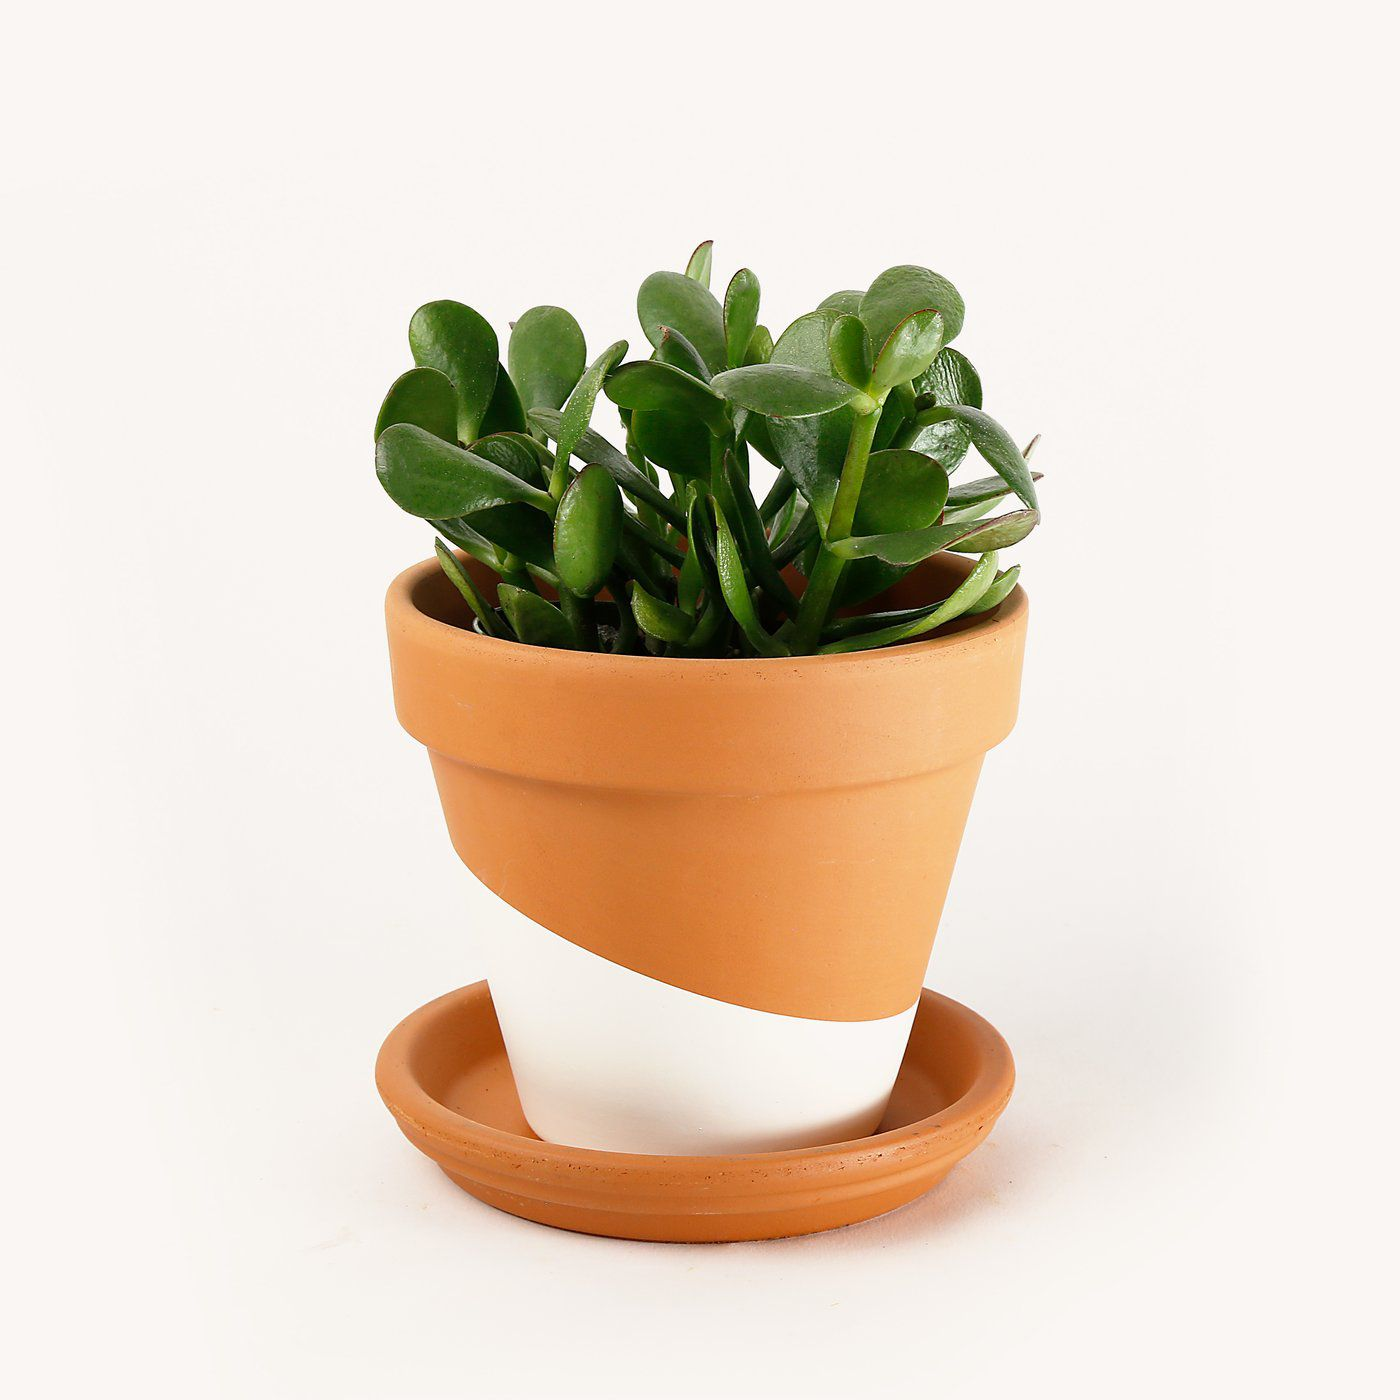 Jade plant in a painted terra cotta pot